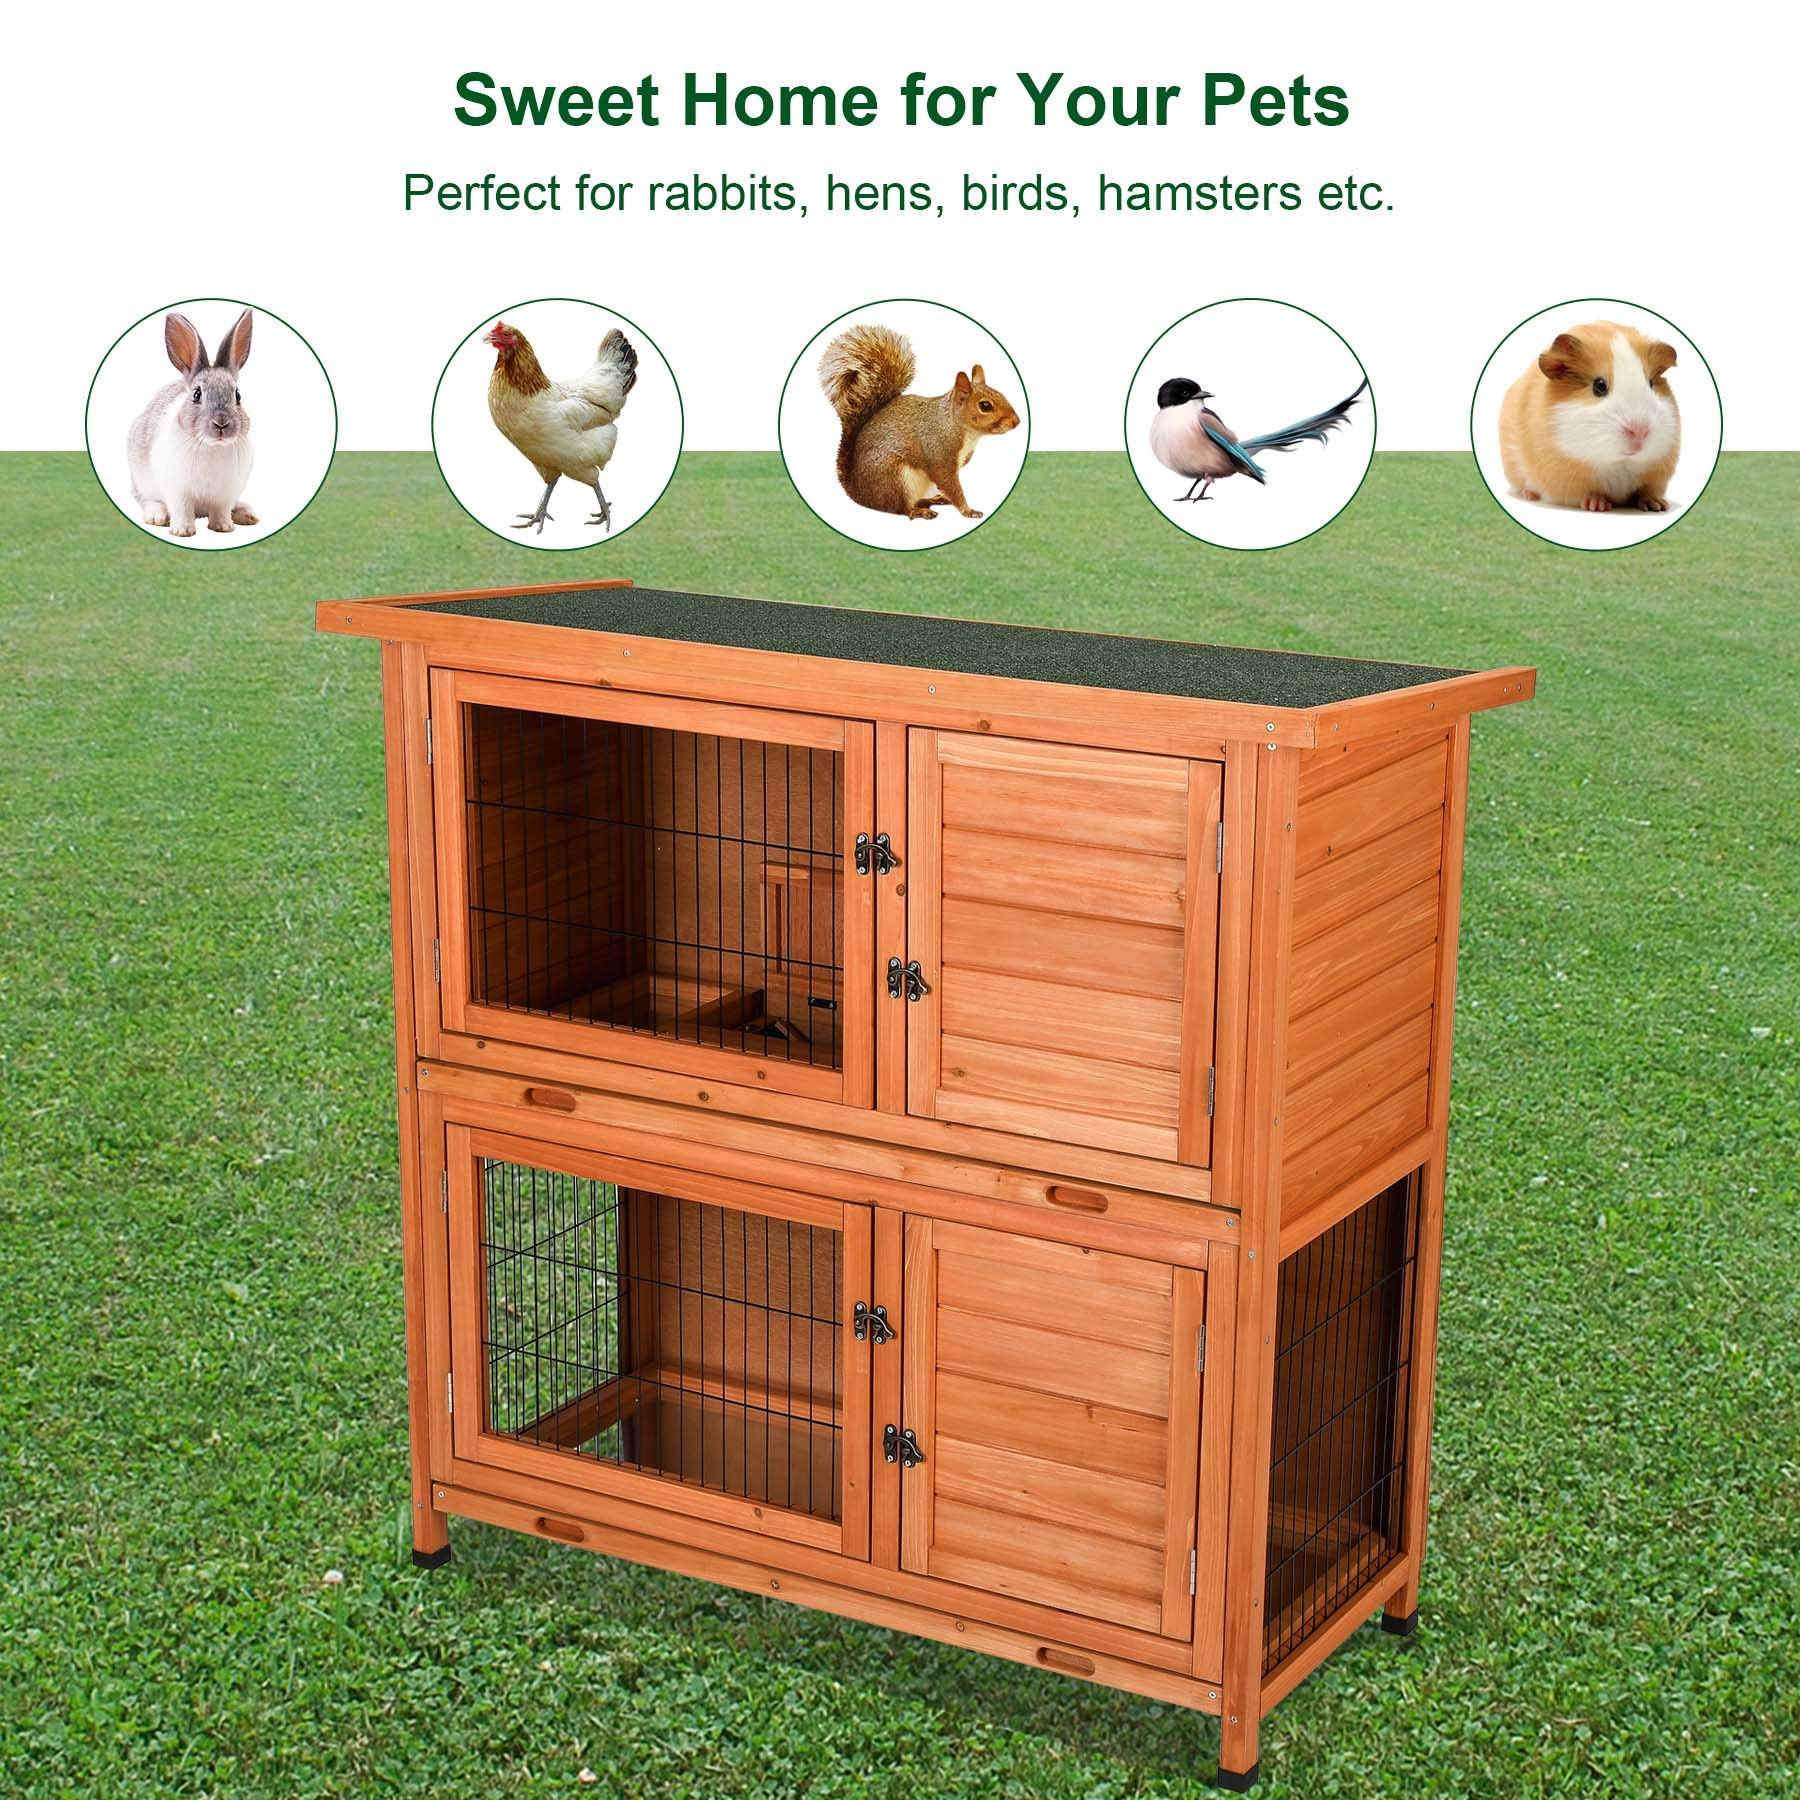 CO-Z 2 Story Outdoor Wooden Bunny Cage Rabbit Hutch Guinea Pig House in Nature Color with Ladder for Small Animals by CO-Z (Image #5)